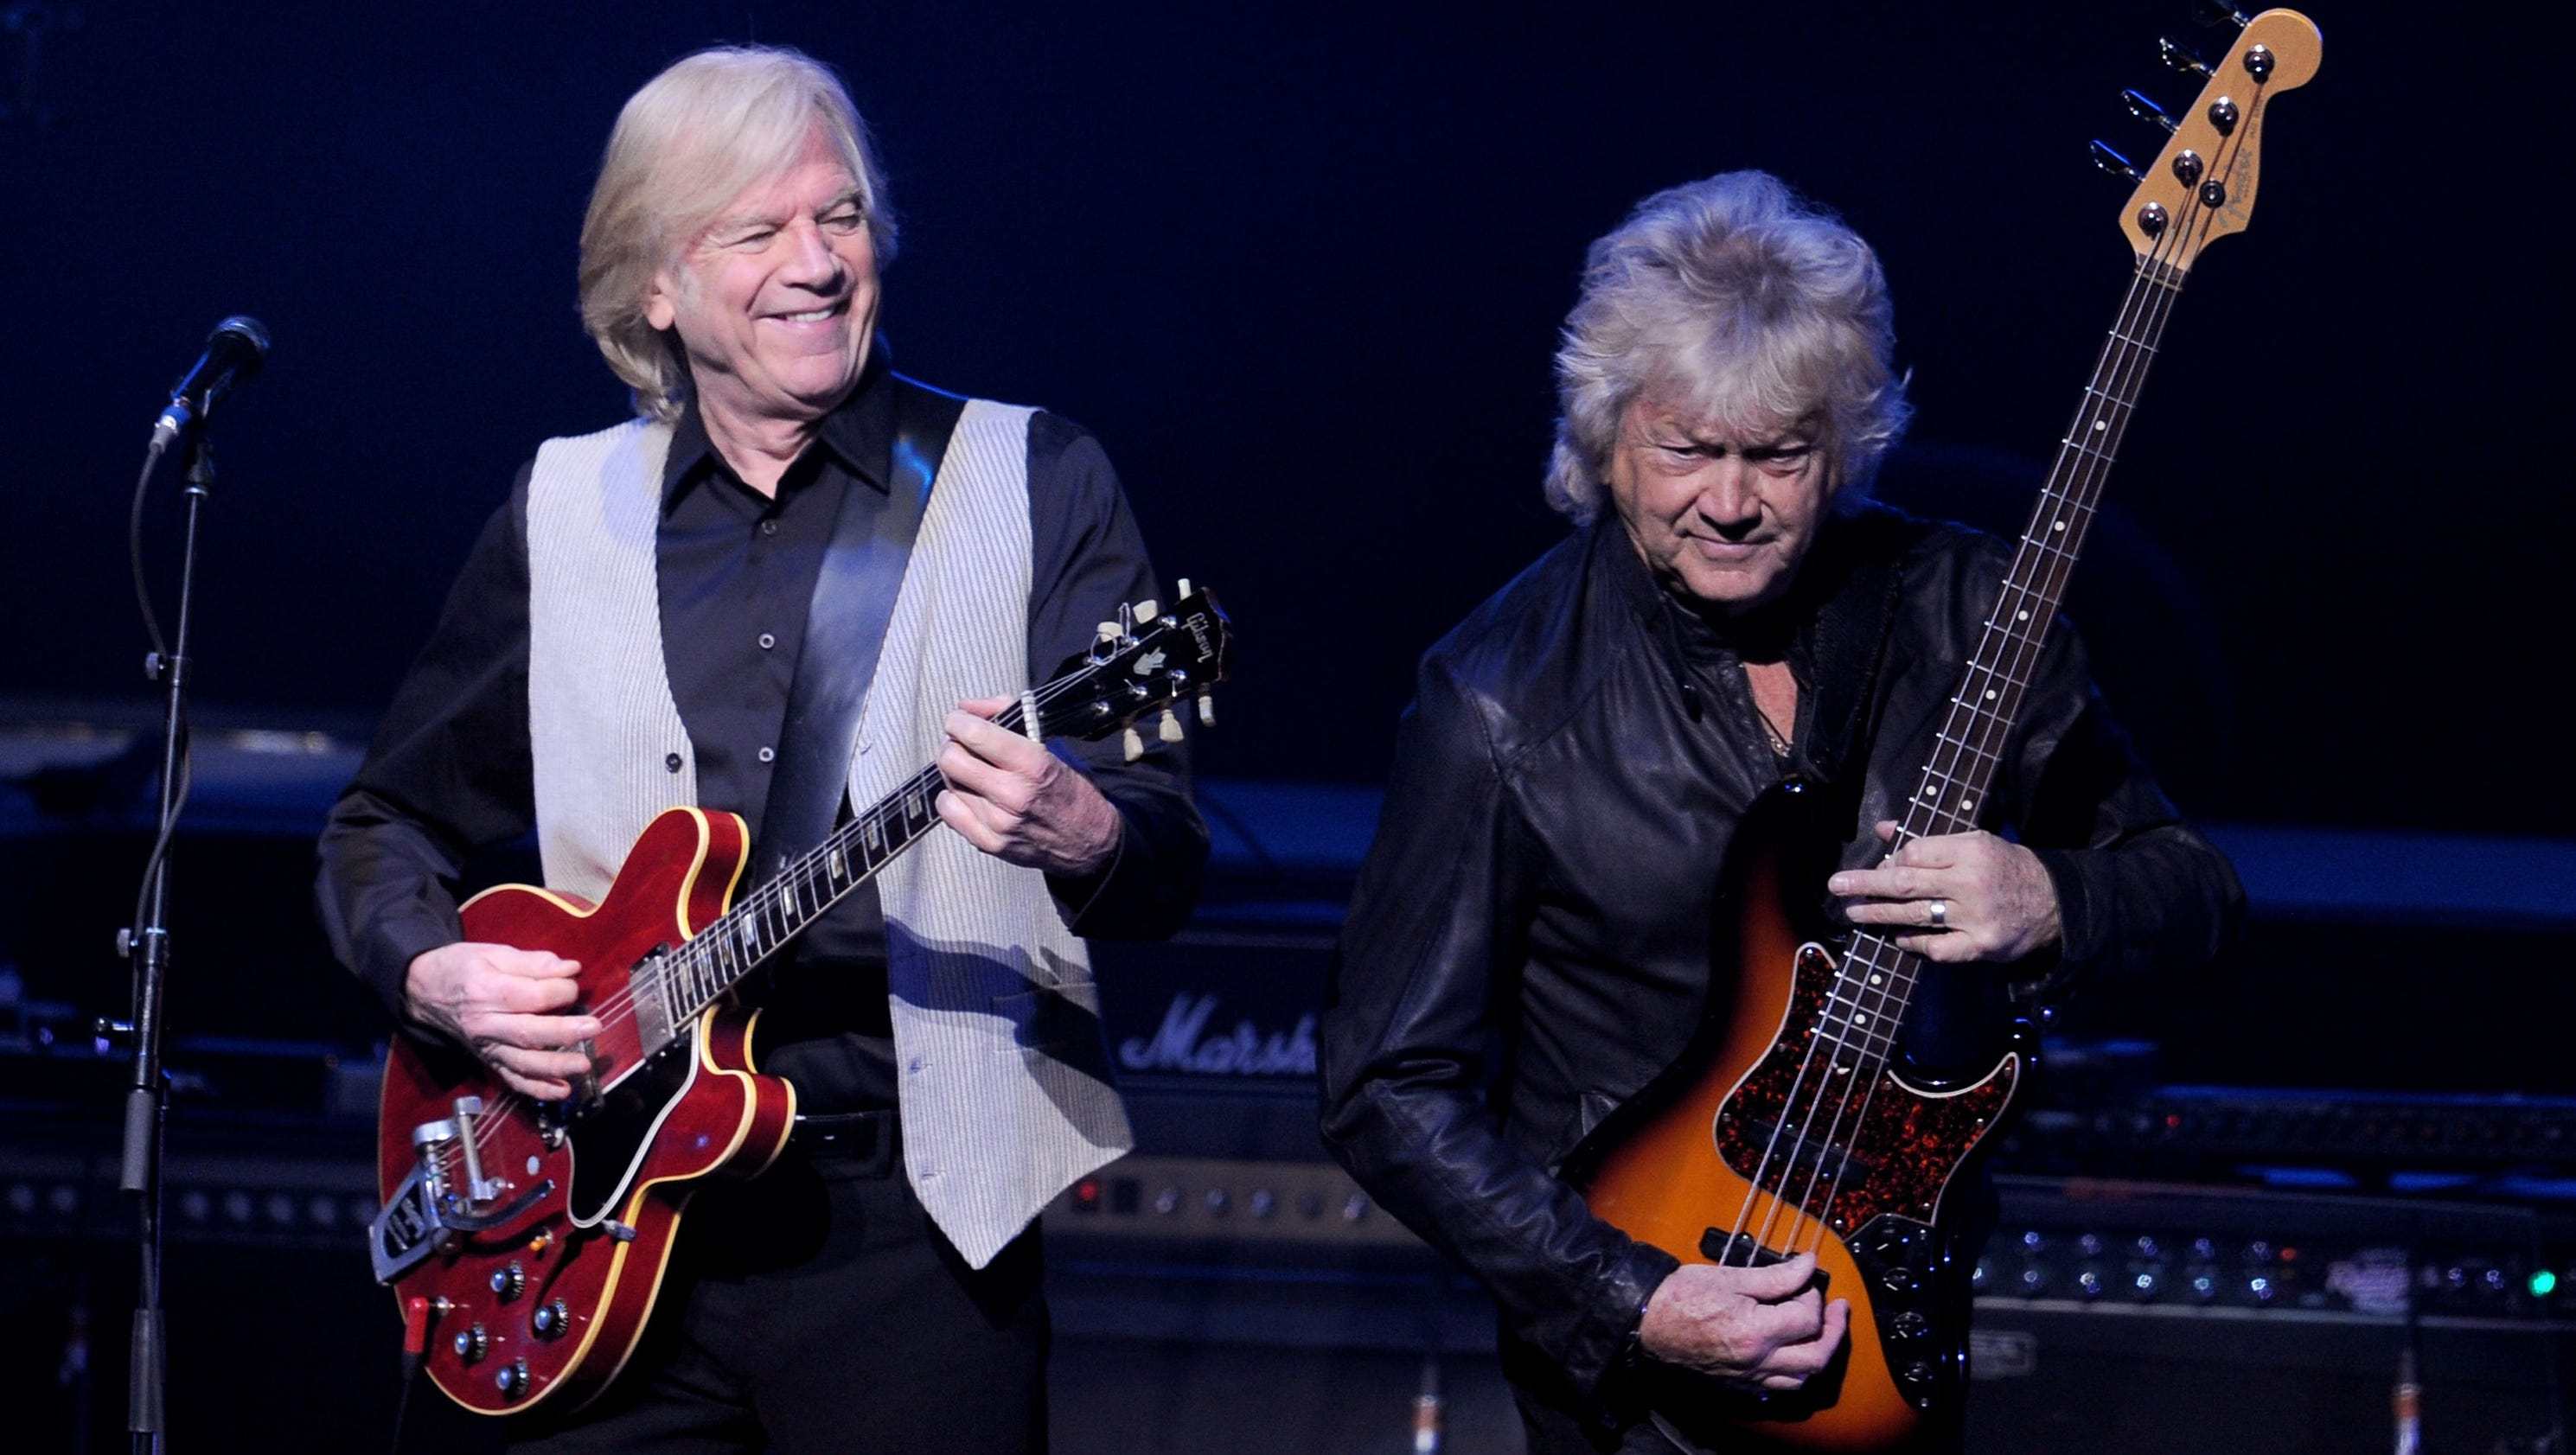 The Moody Blues Days Of Future Passed Tour